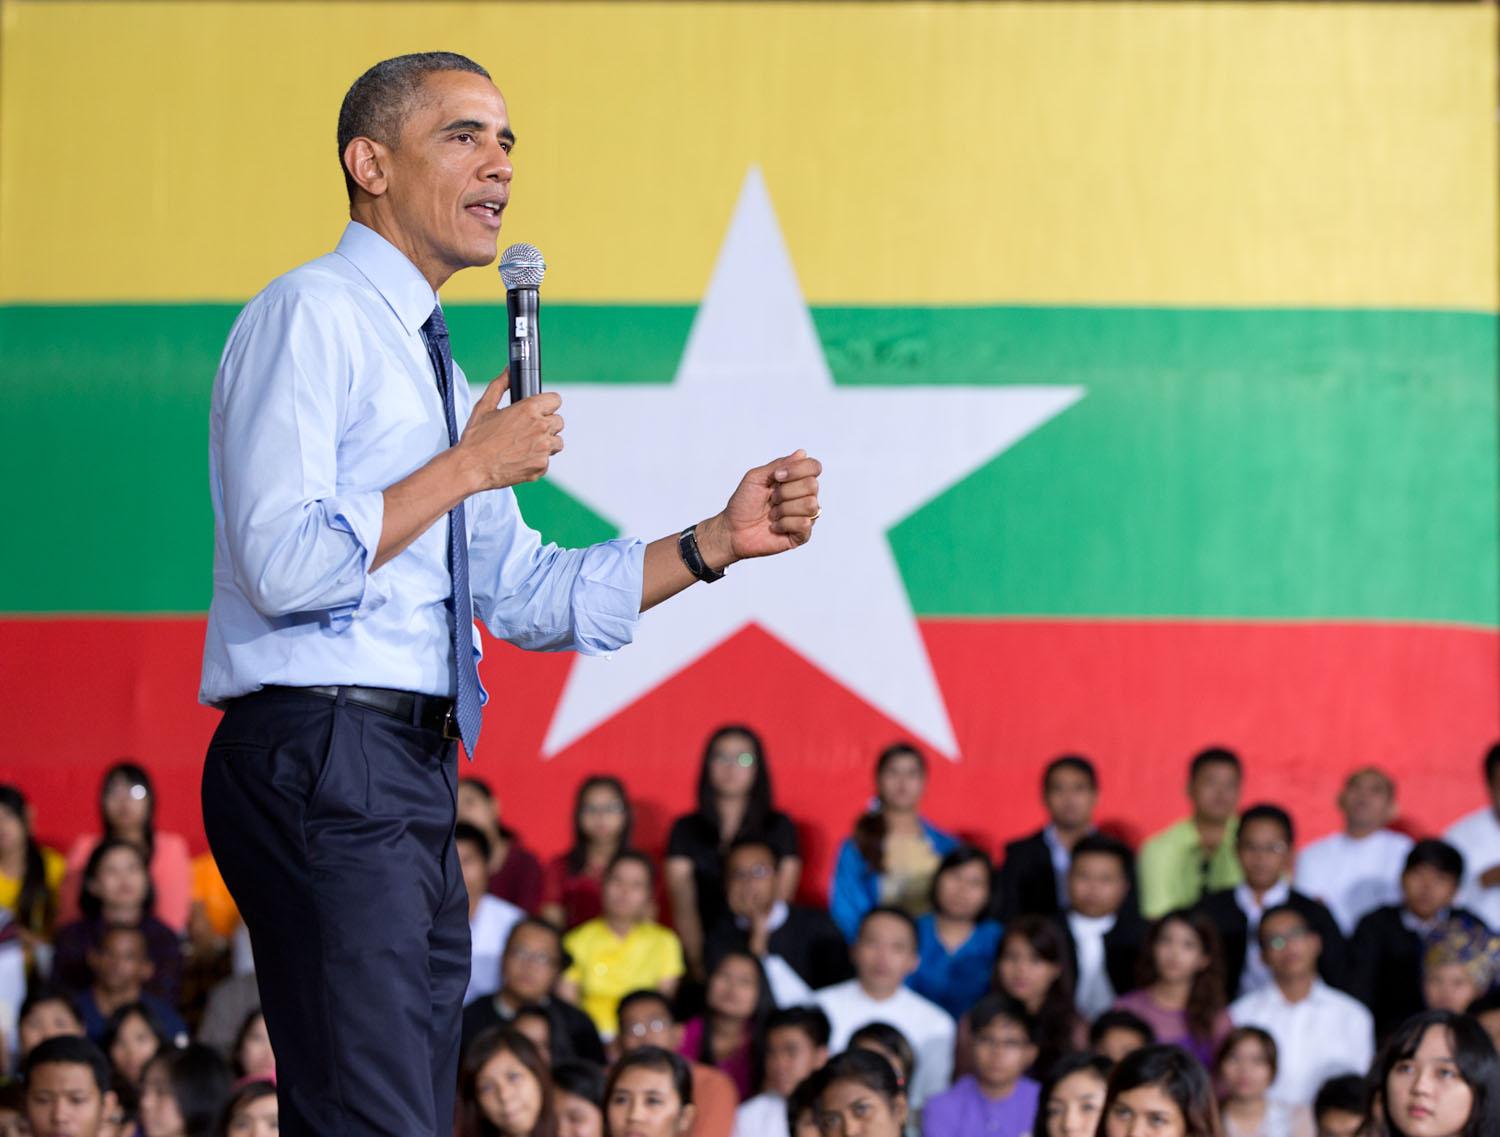 President Obama Answers Questions at YSEALI Town Hall